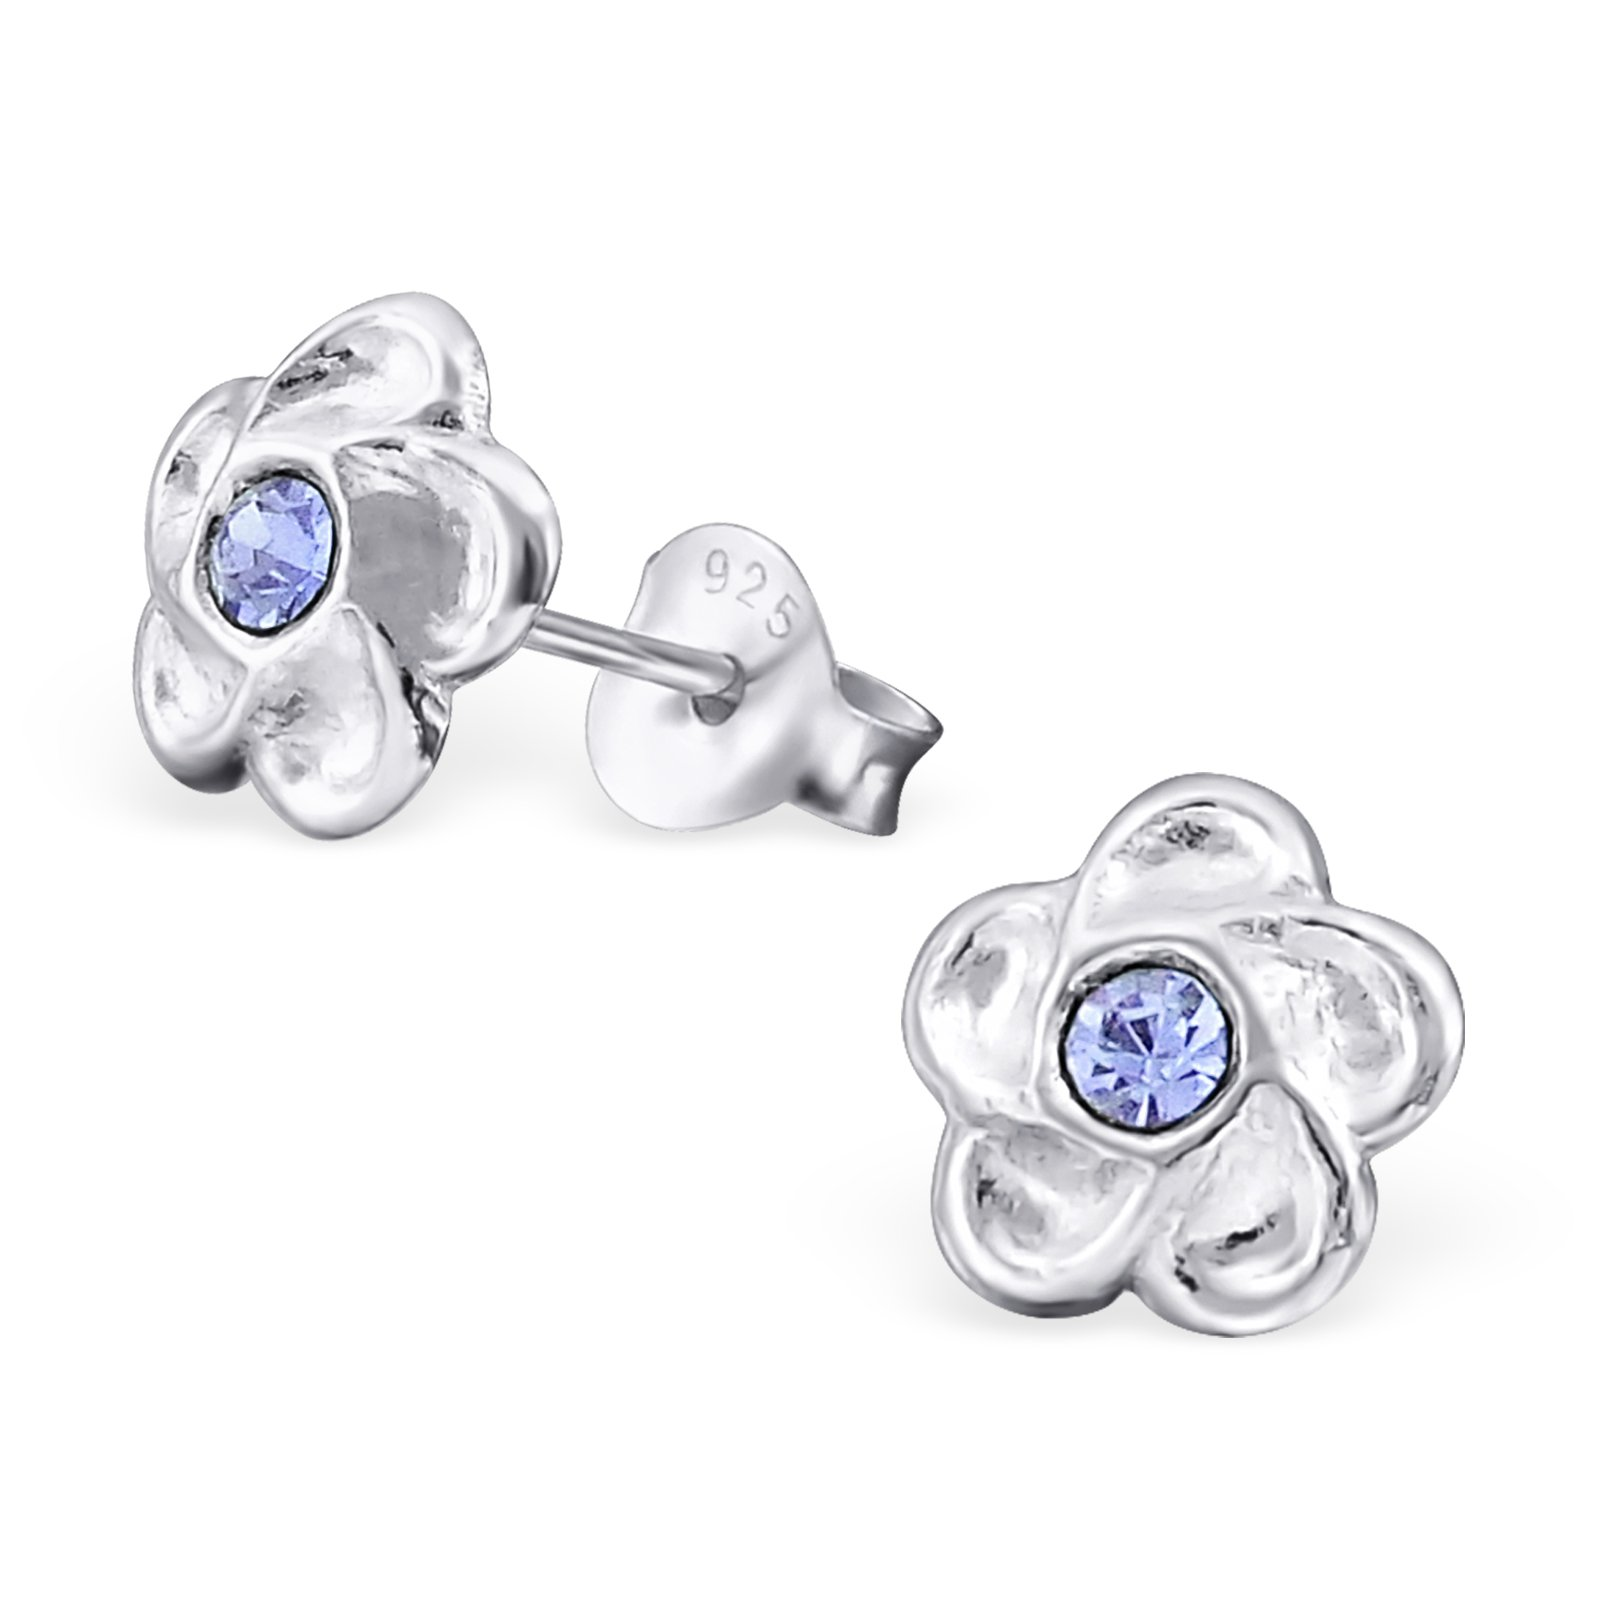 Hypoallergenic Flower Stud Earrings for Girls (Nickel Free and Safe for Sensitive Ears) - Violet